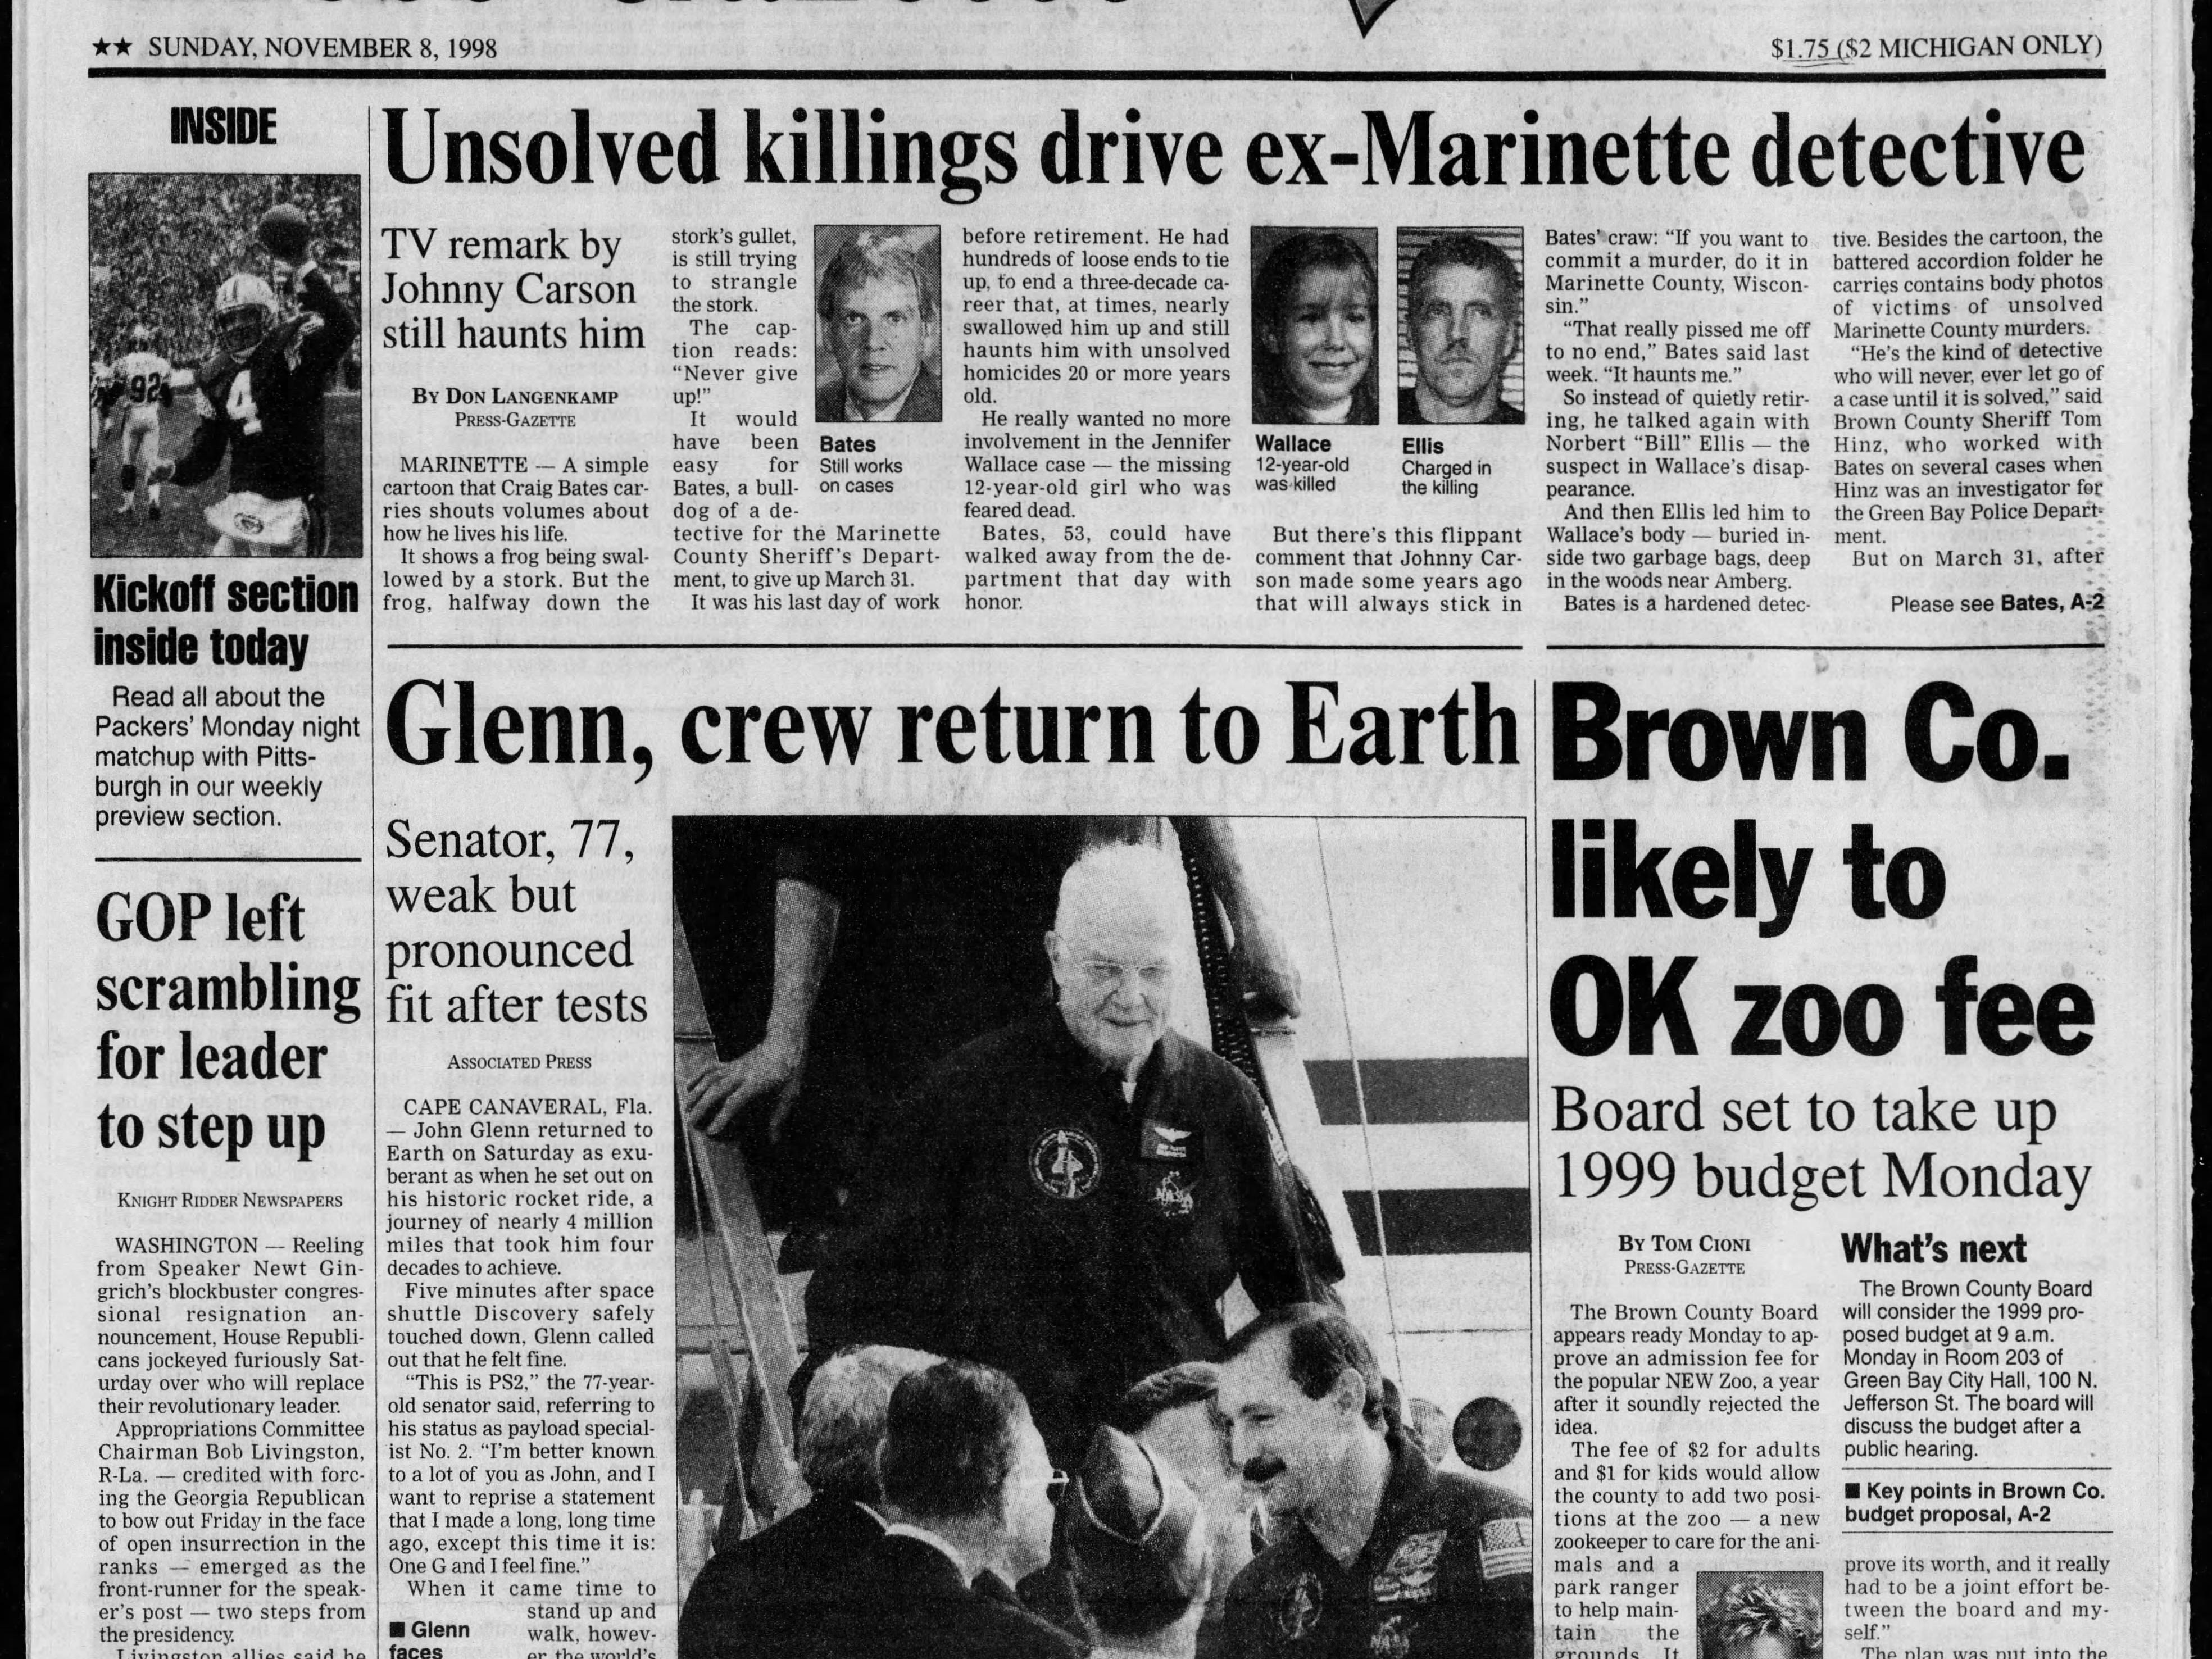 Today in History: Nov. 7, 1998